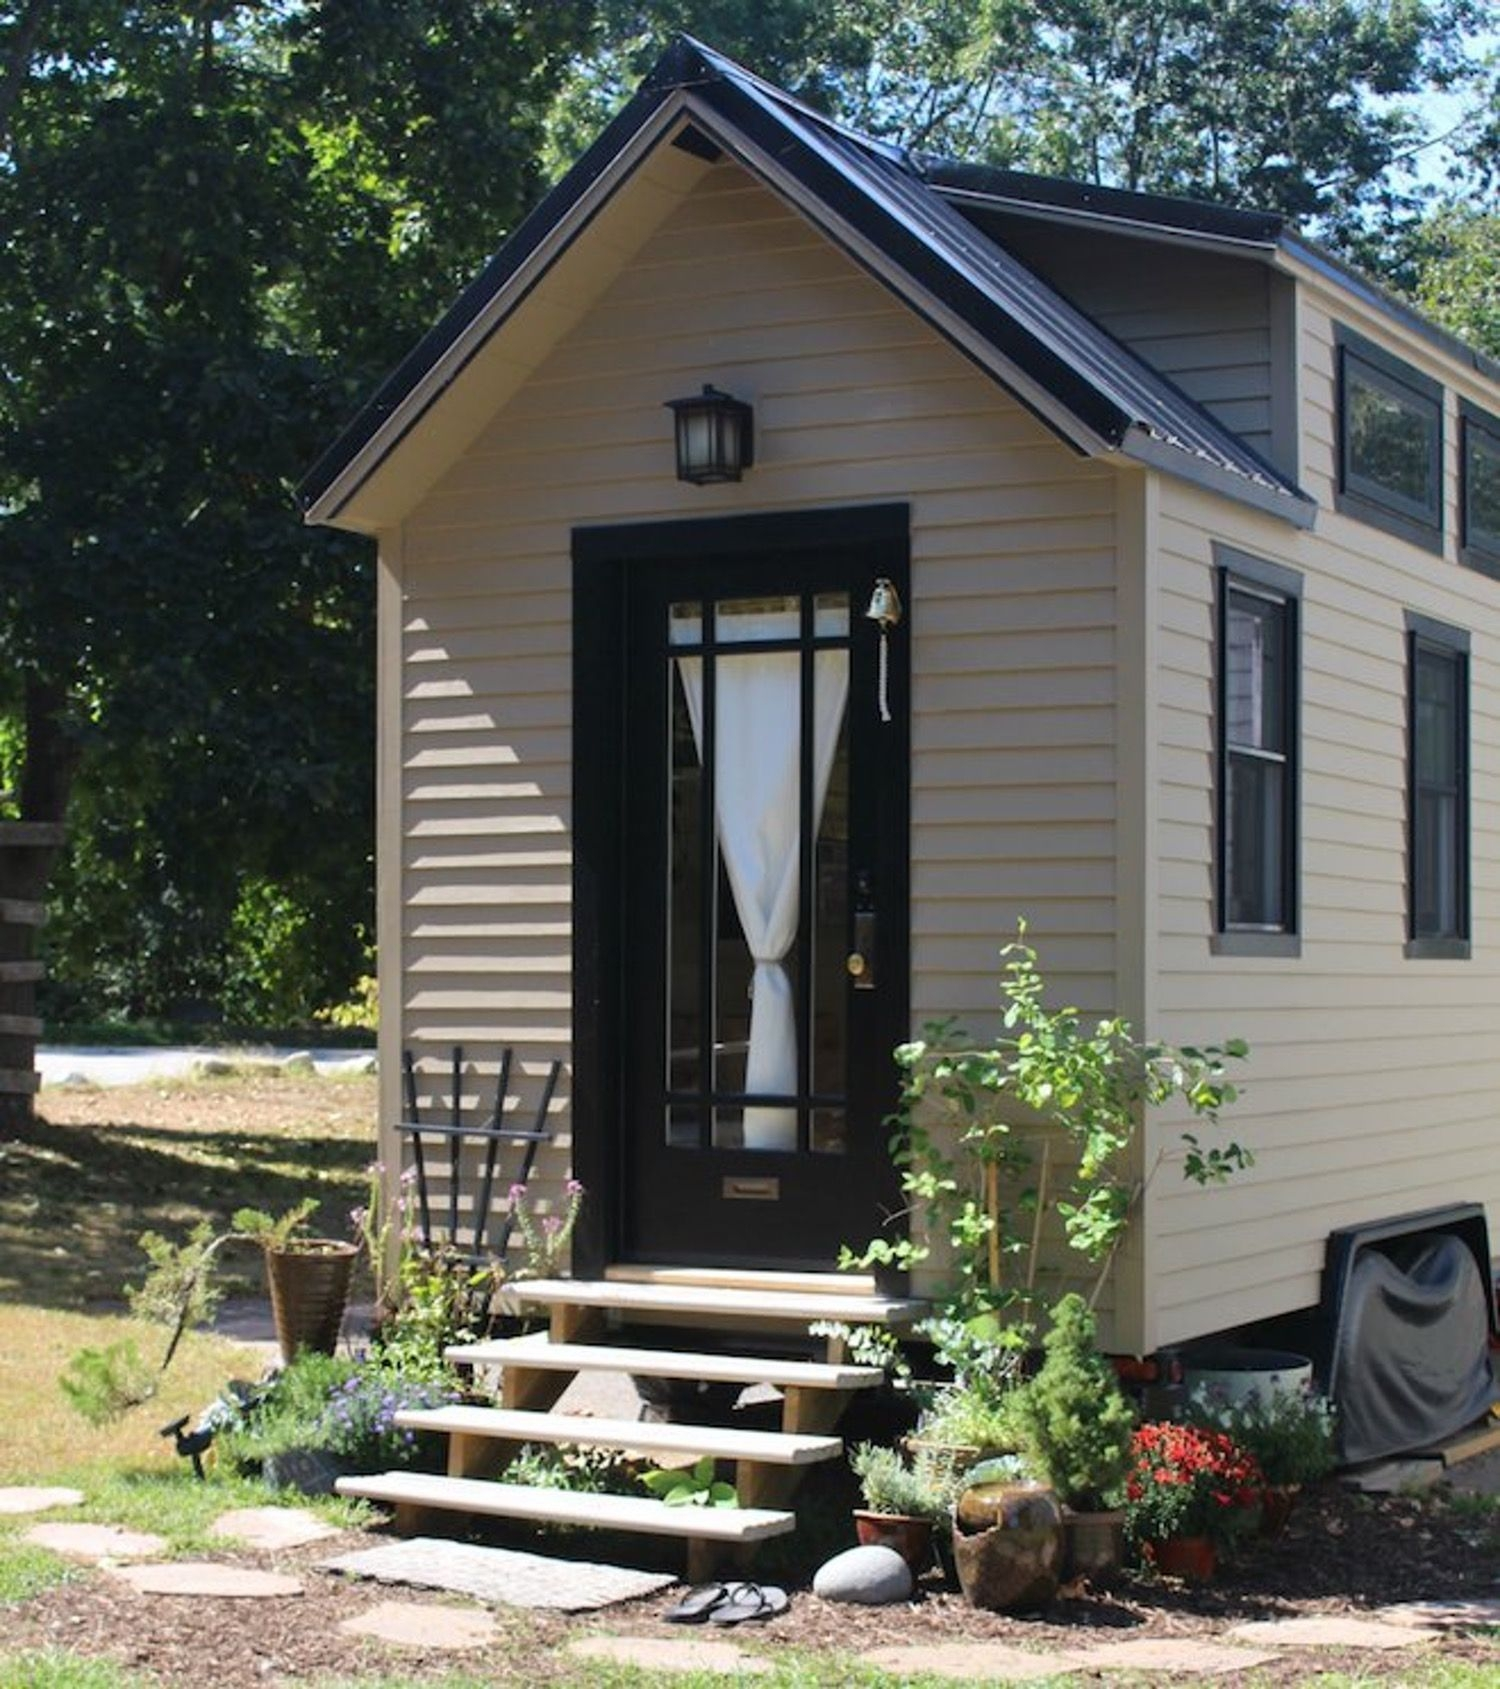 Adorable Tiny Houses Design Idea With 160 Square Feet That You Need To Try 35